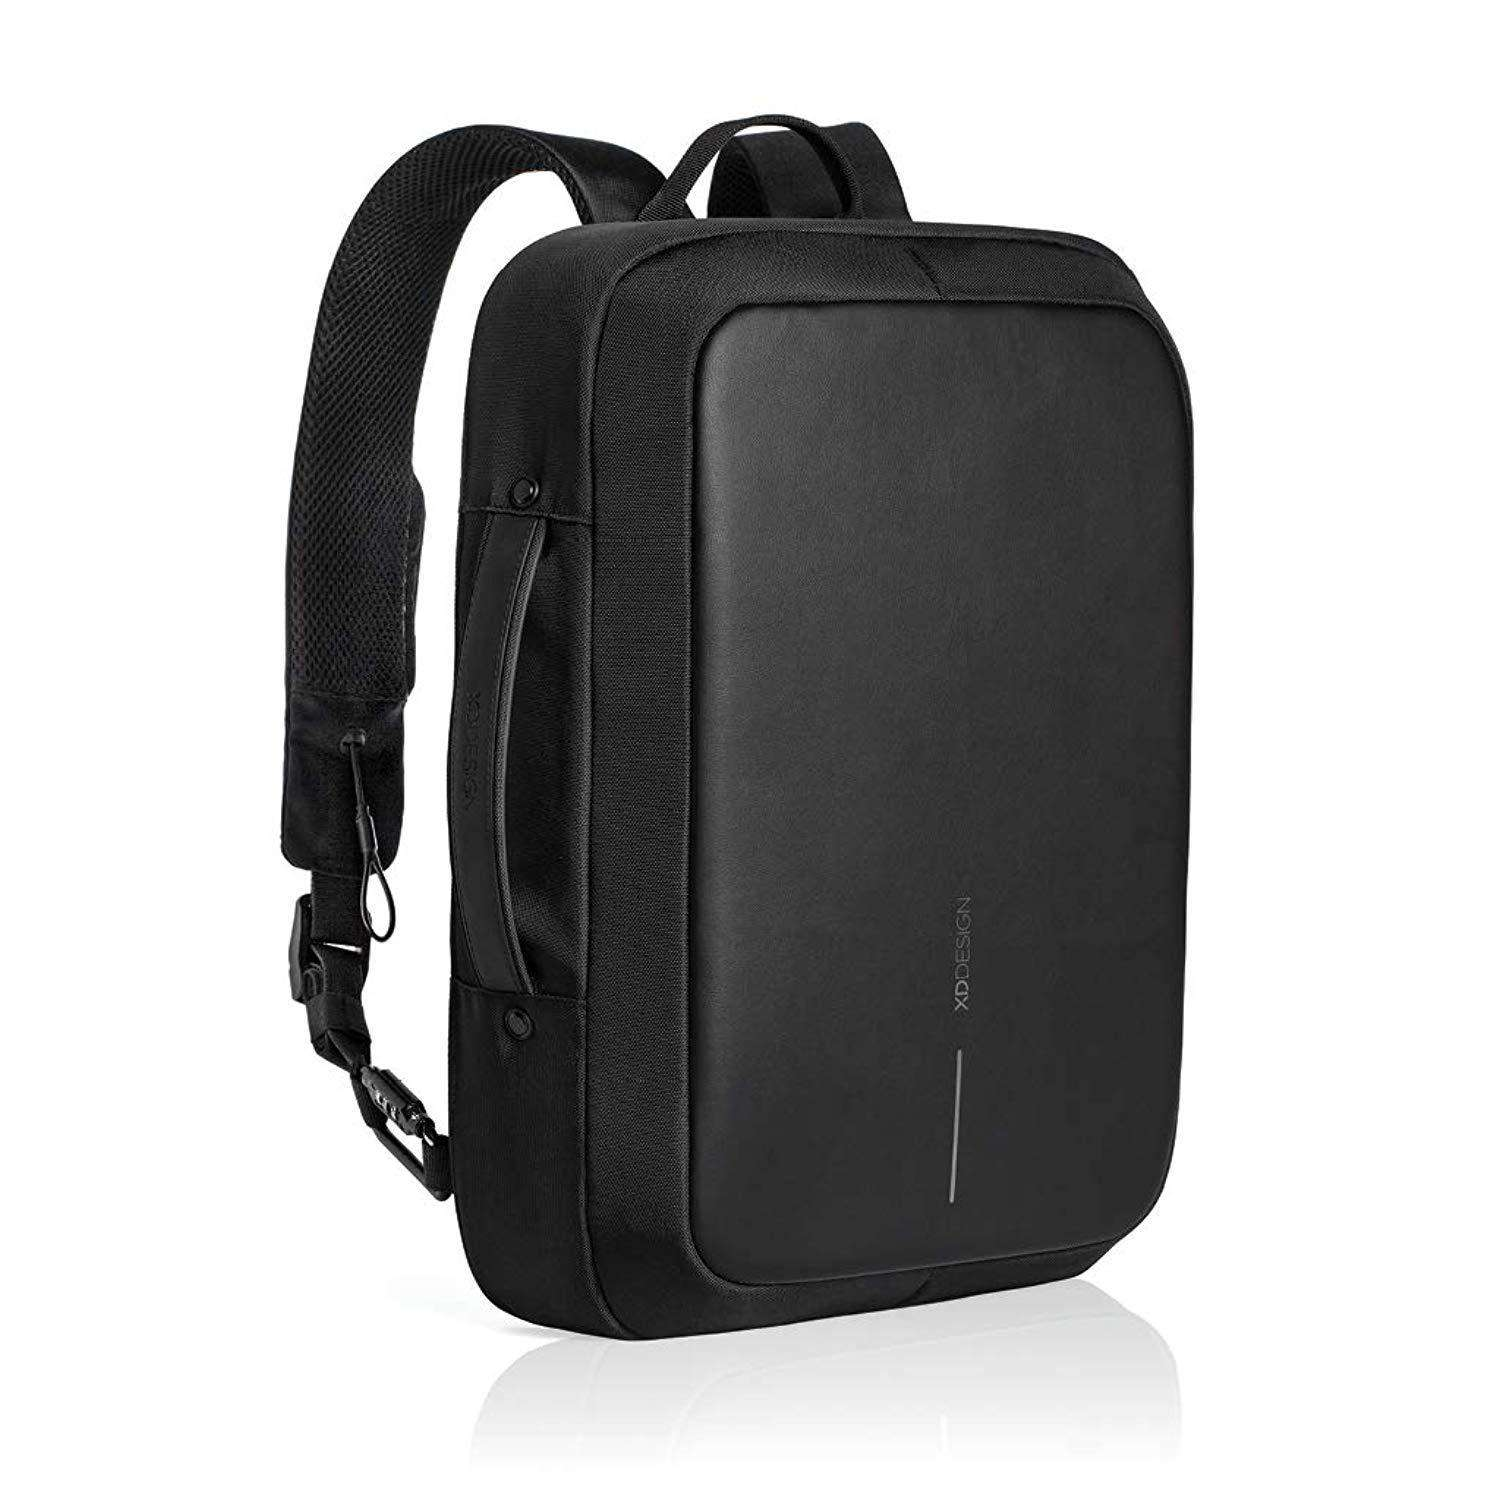 XD Design Bobby Bizz Anti-Theft Unisex Laptop Backpack with USB Accessories Umisfashion Store